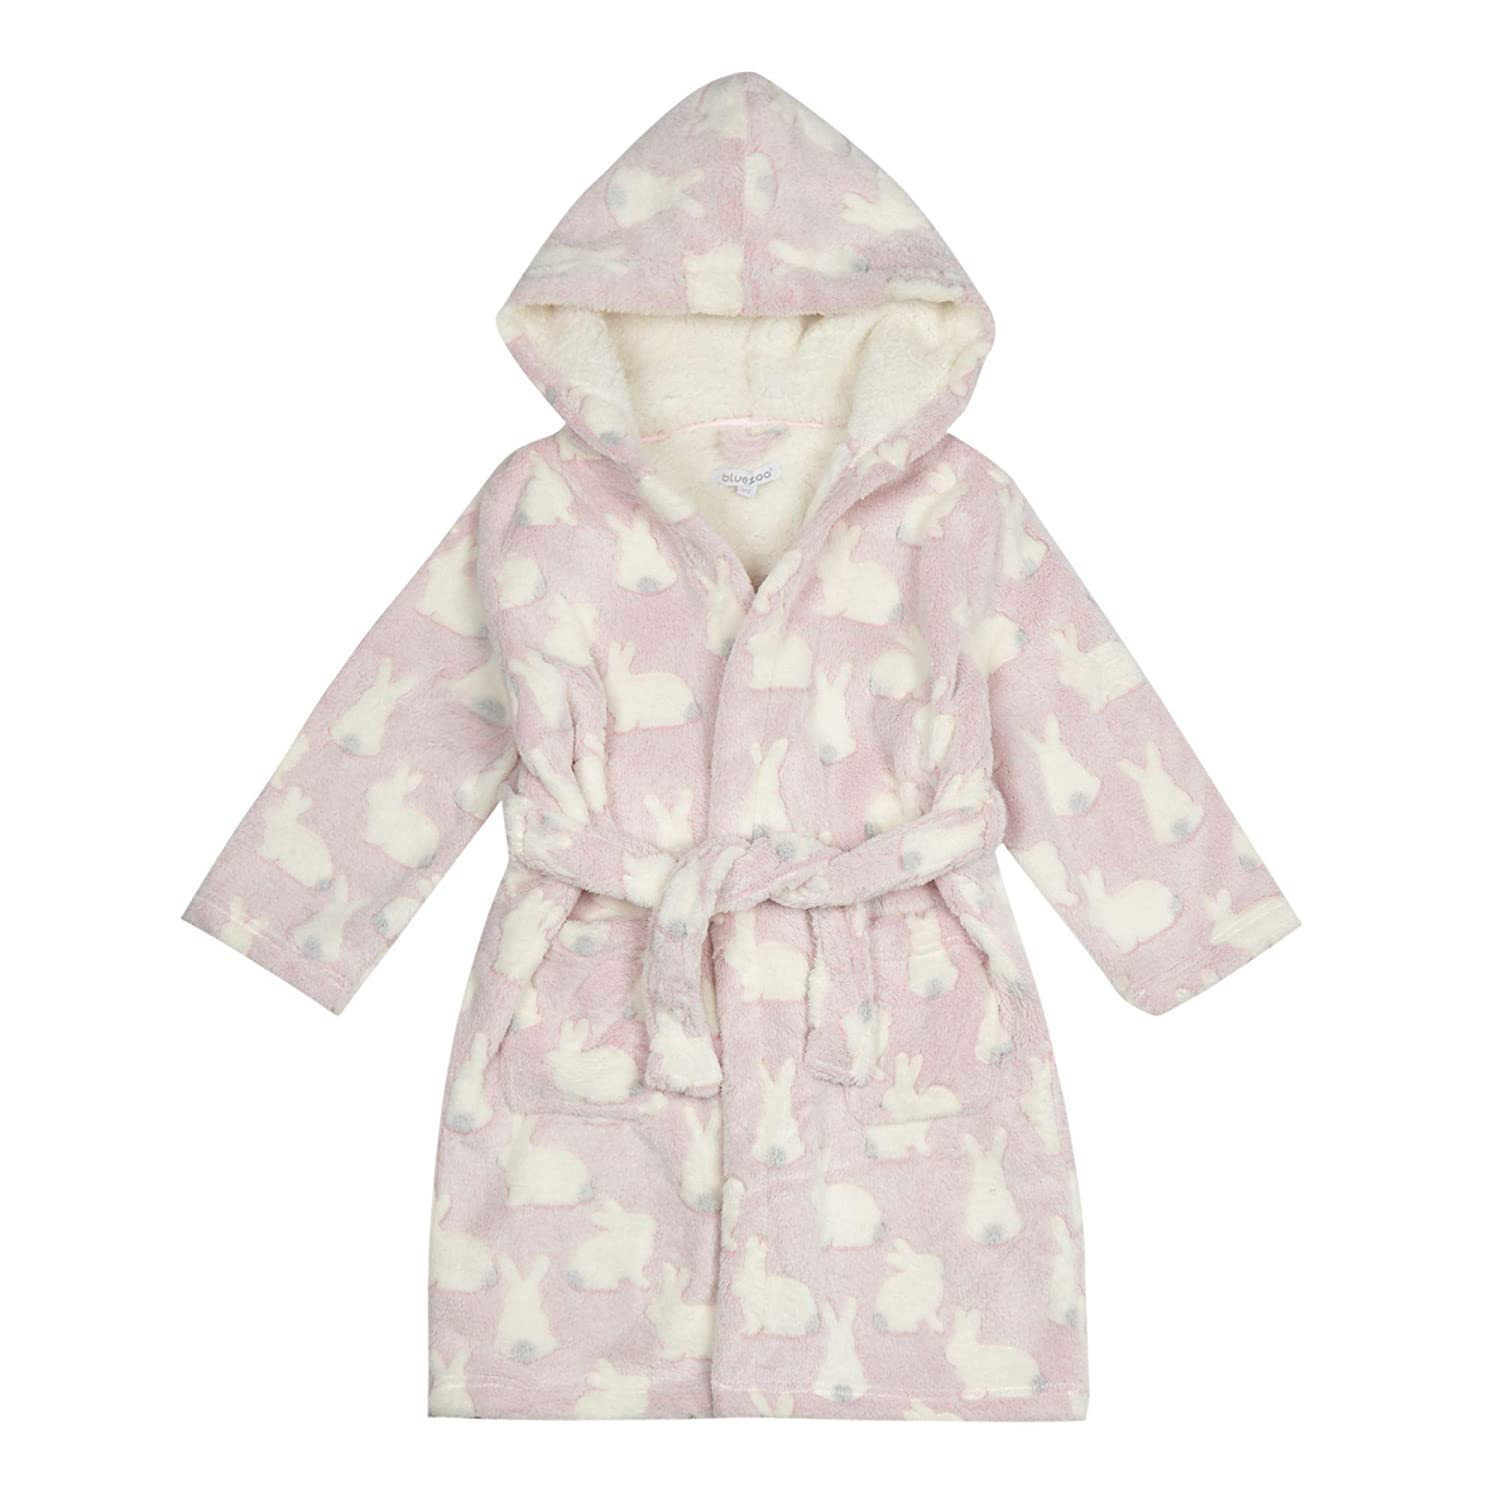 bluezoo Kids Girls' Bunny Dressing Gown Age 1-14 Years, Pink